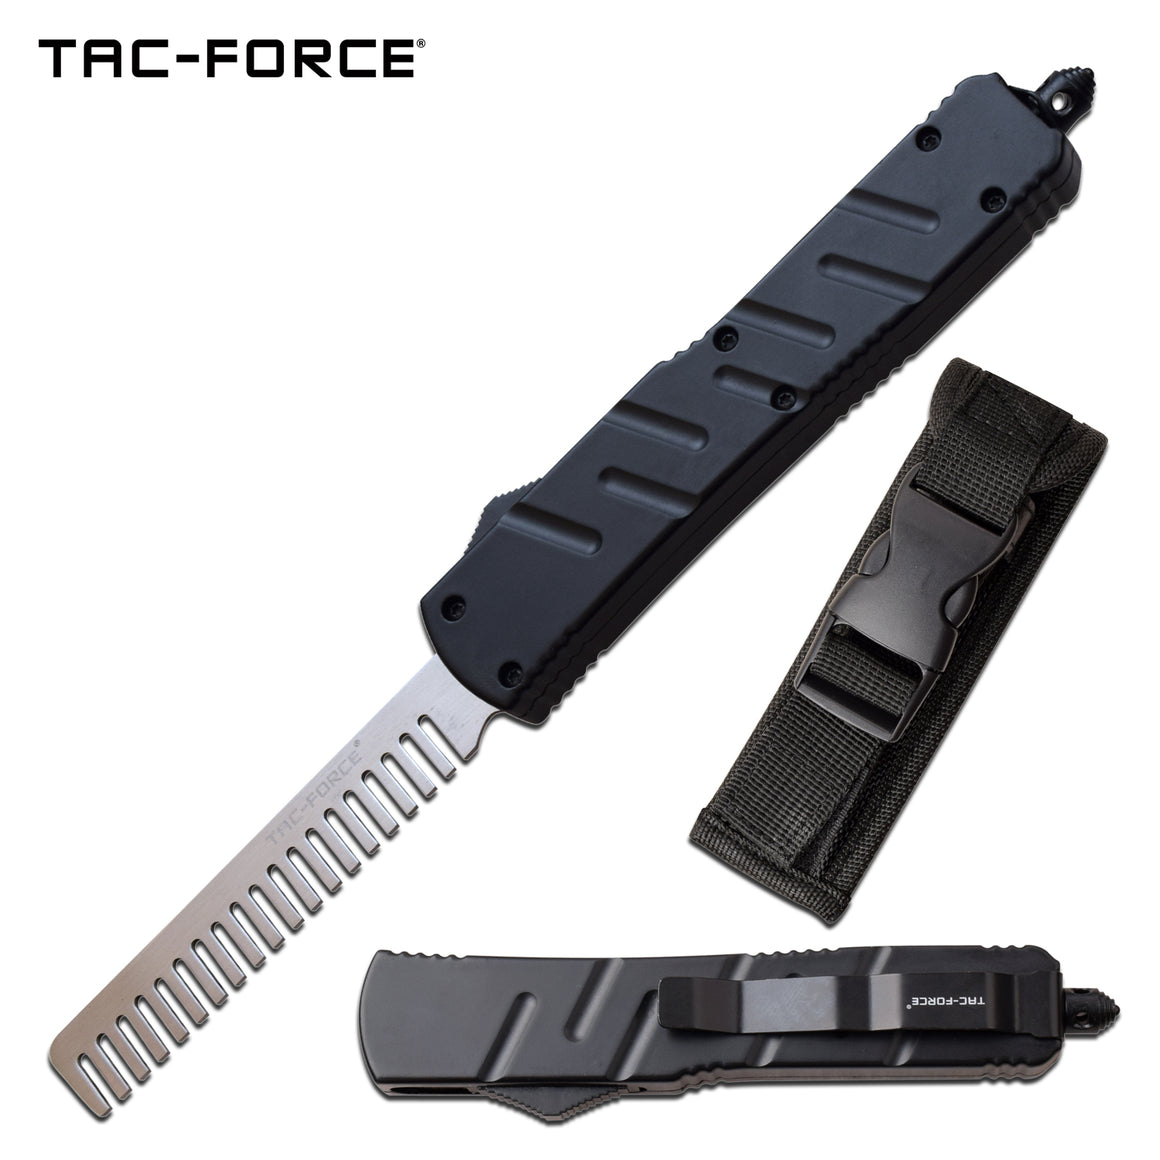 Tac-Force TF-CB004 Folding Knife